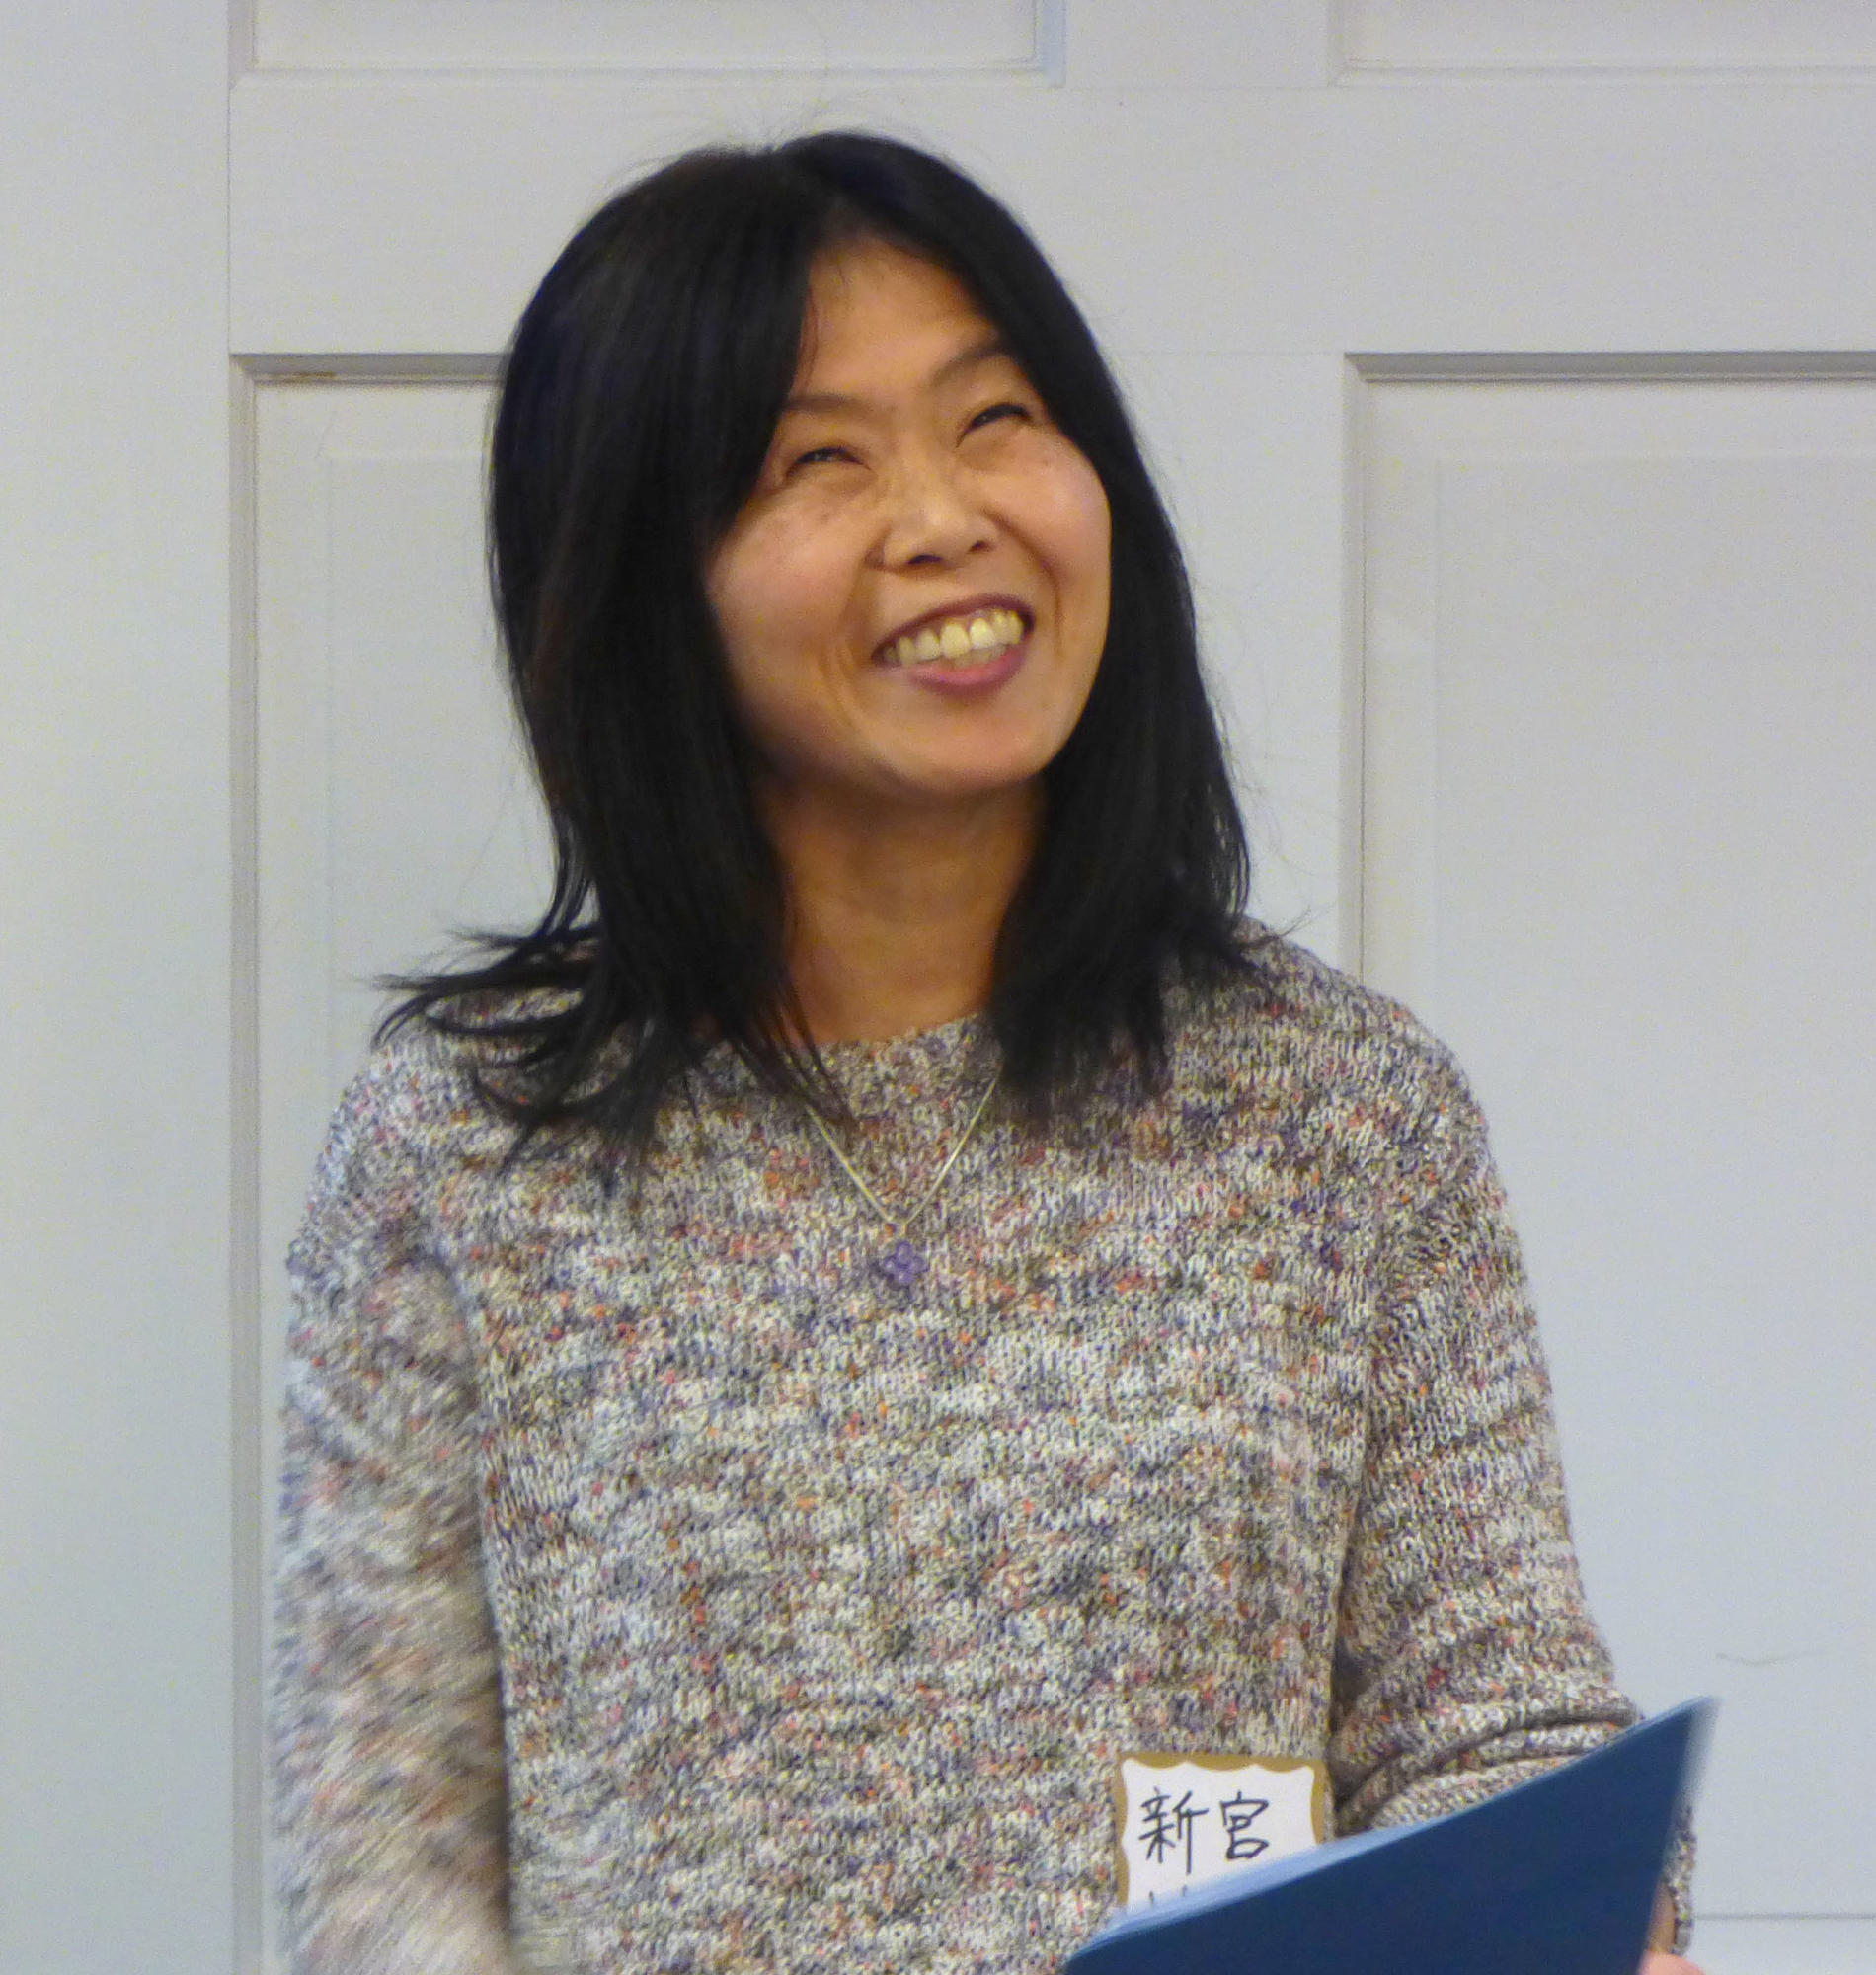 Ikue Shingu, wearing a cream-colored sweater, throws her head back and laughs while delivering her speech